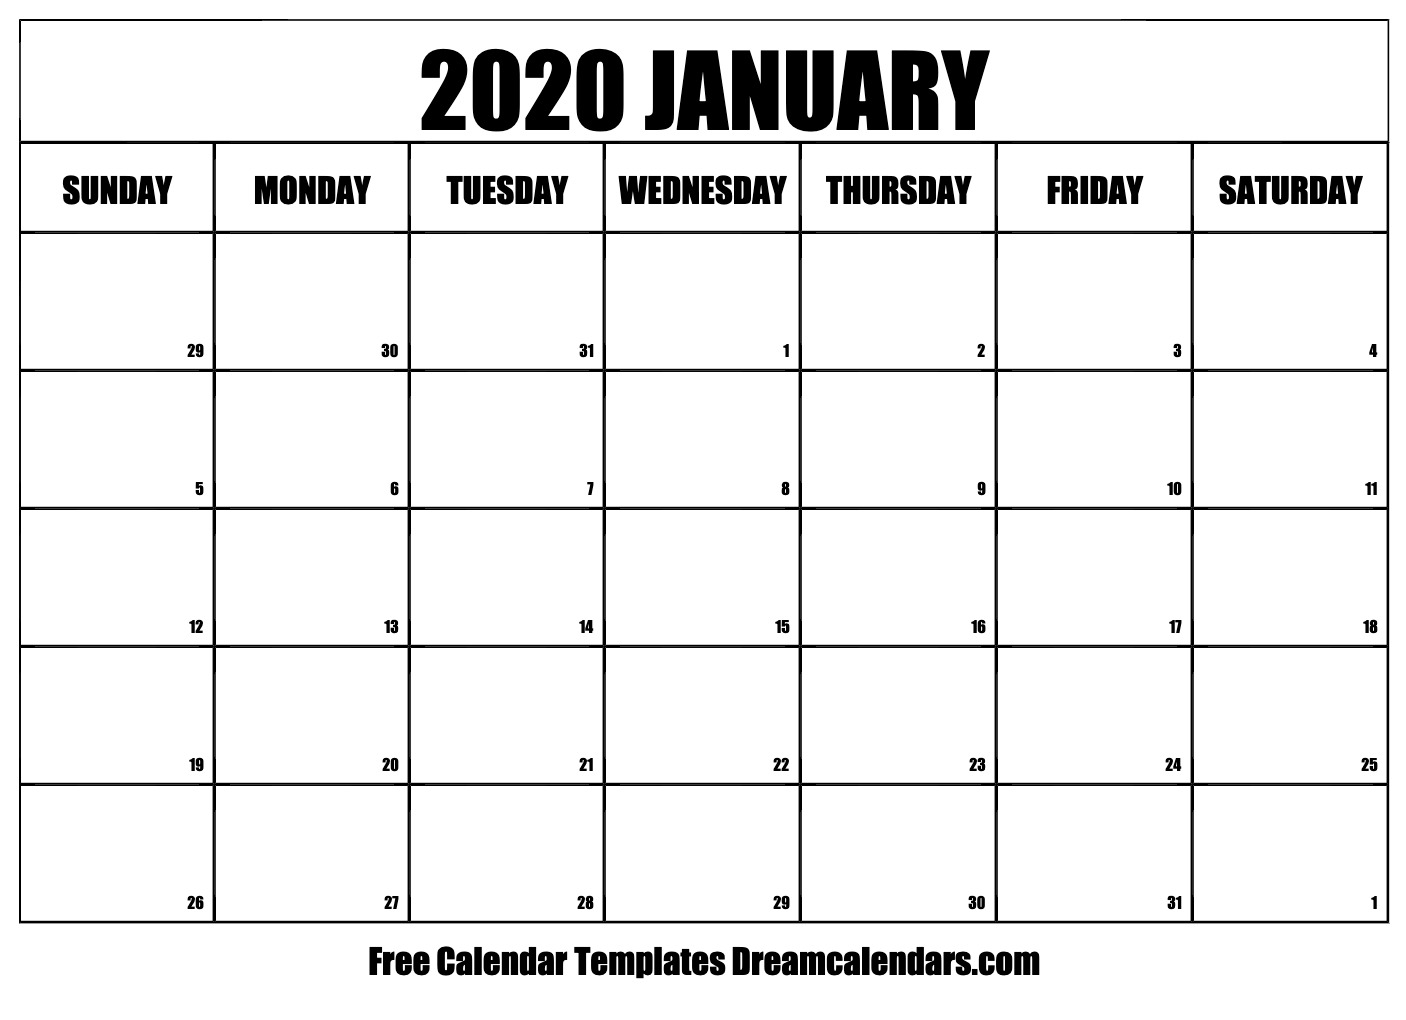 This is a graphic of Tactueux Free Printable Calendars January 2020